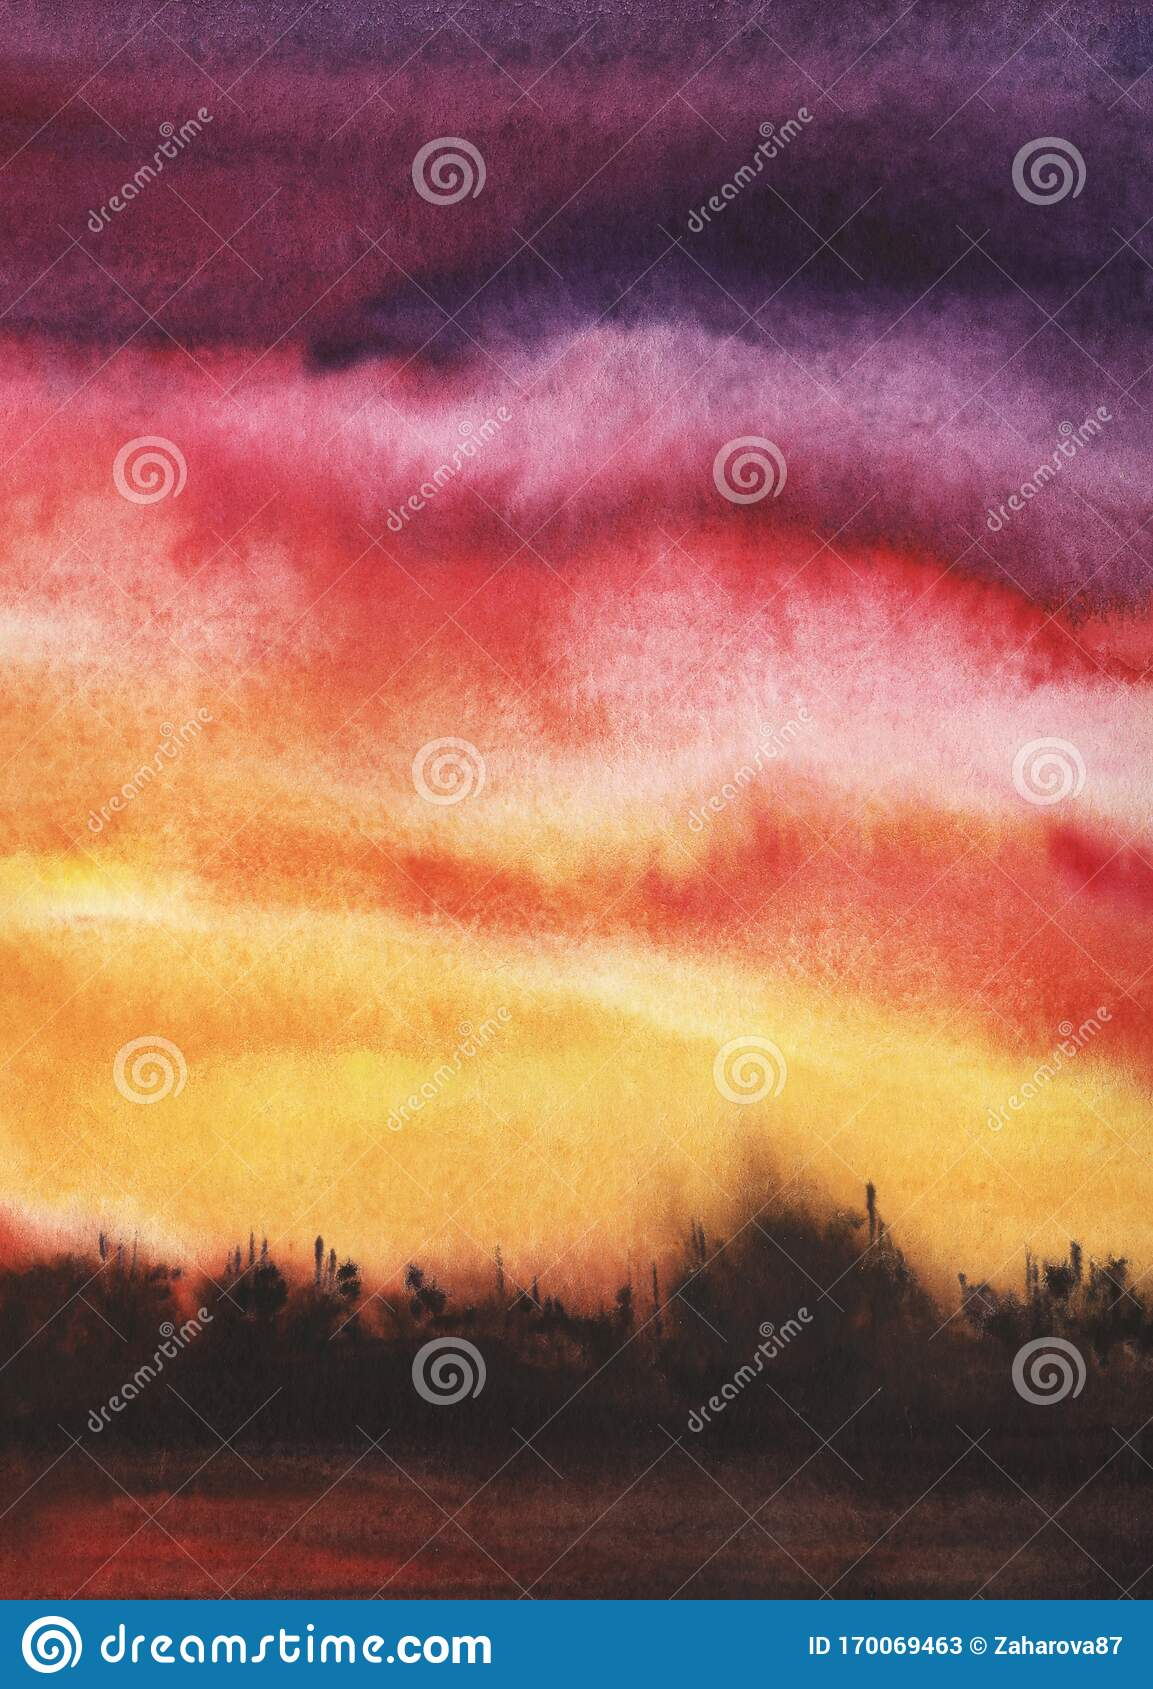 Abstract Watercolor Landscape Liquid Ink On Texture Paper Rainbow Gradient From Yellow To Red To Purple Sunset Sky Clouds Dark Stock Illustration Illustration Of Pink Color 170069463